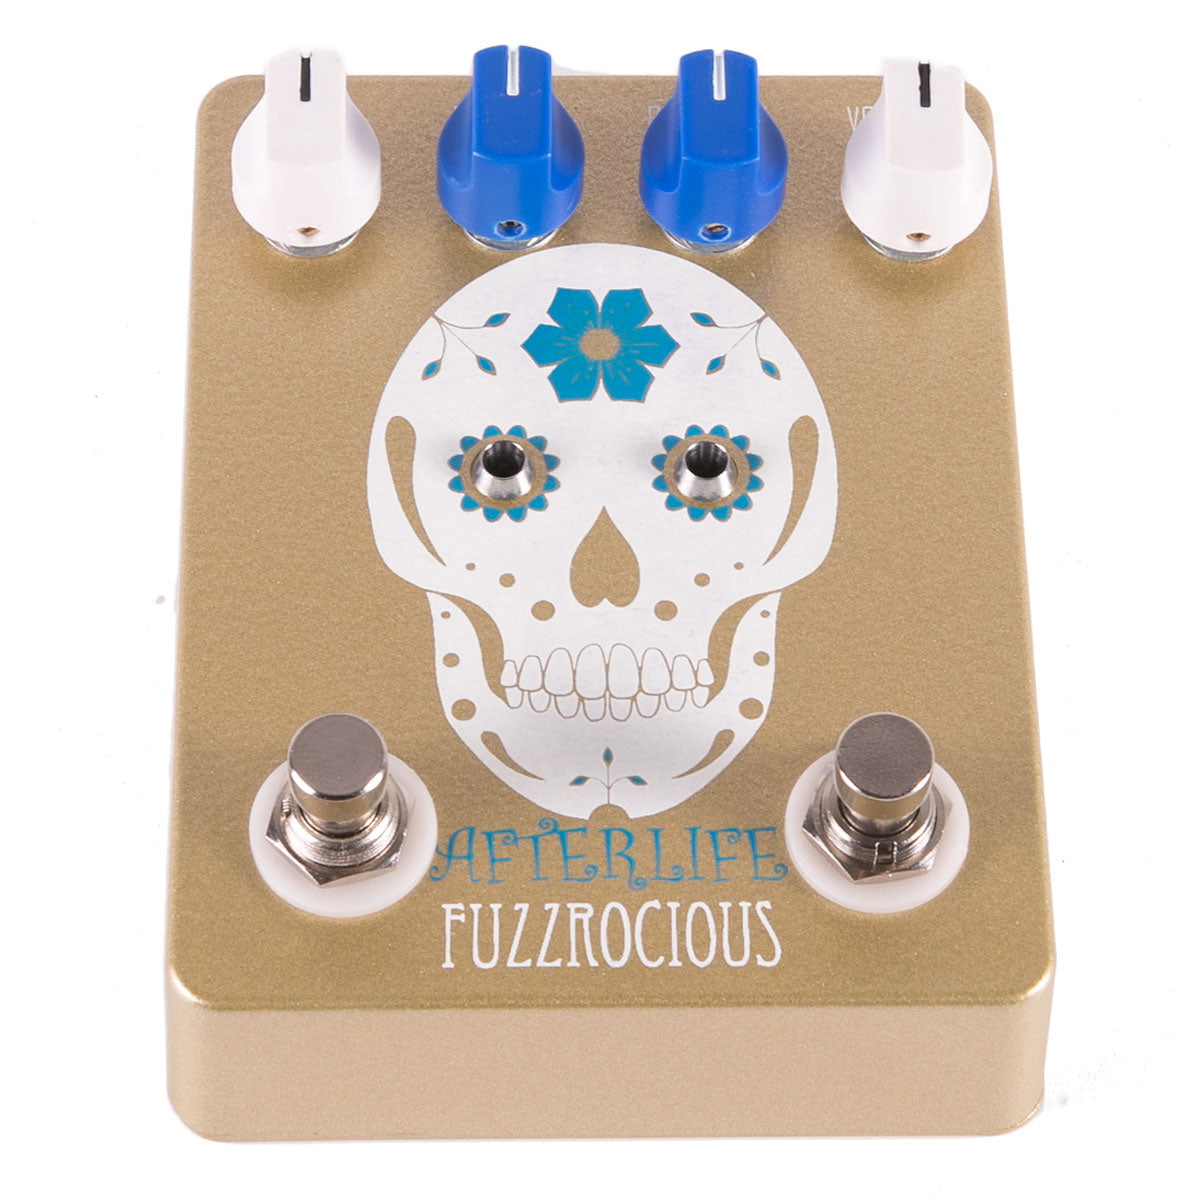 Fuzzrocious Pedals - Afterlife - Reverb